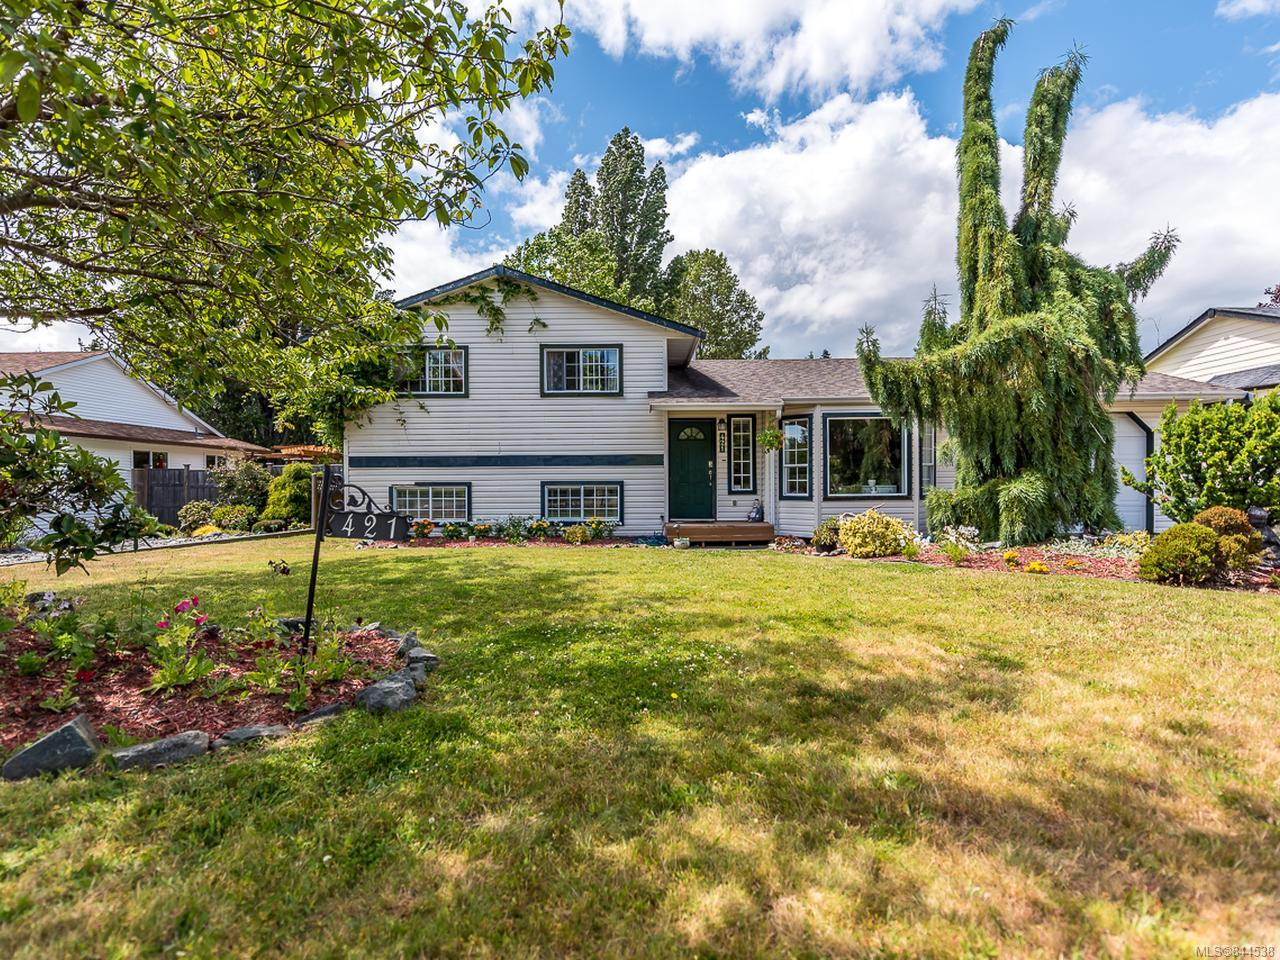 FEATURED LISTING: 421 Quarry Rd COMOX